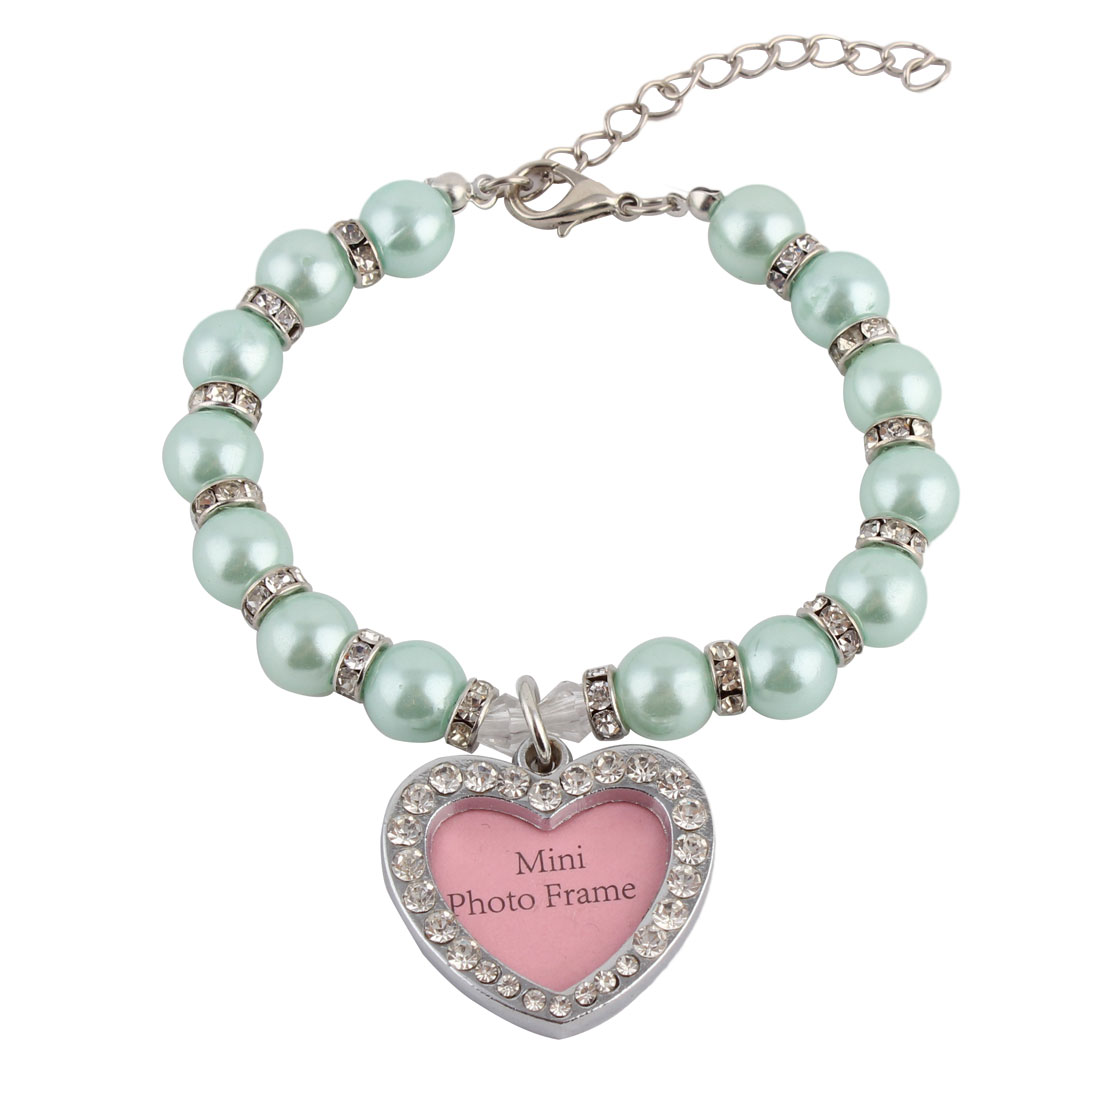 Dog Plastic Jewelry Imitation Pearl Linked Heart Shaped Pendant Decor Necklace Cyan